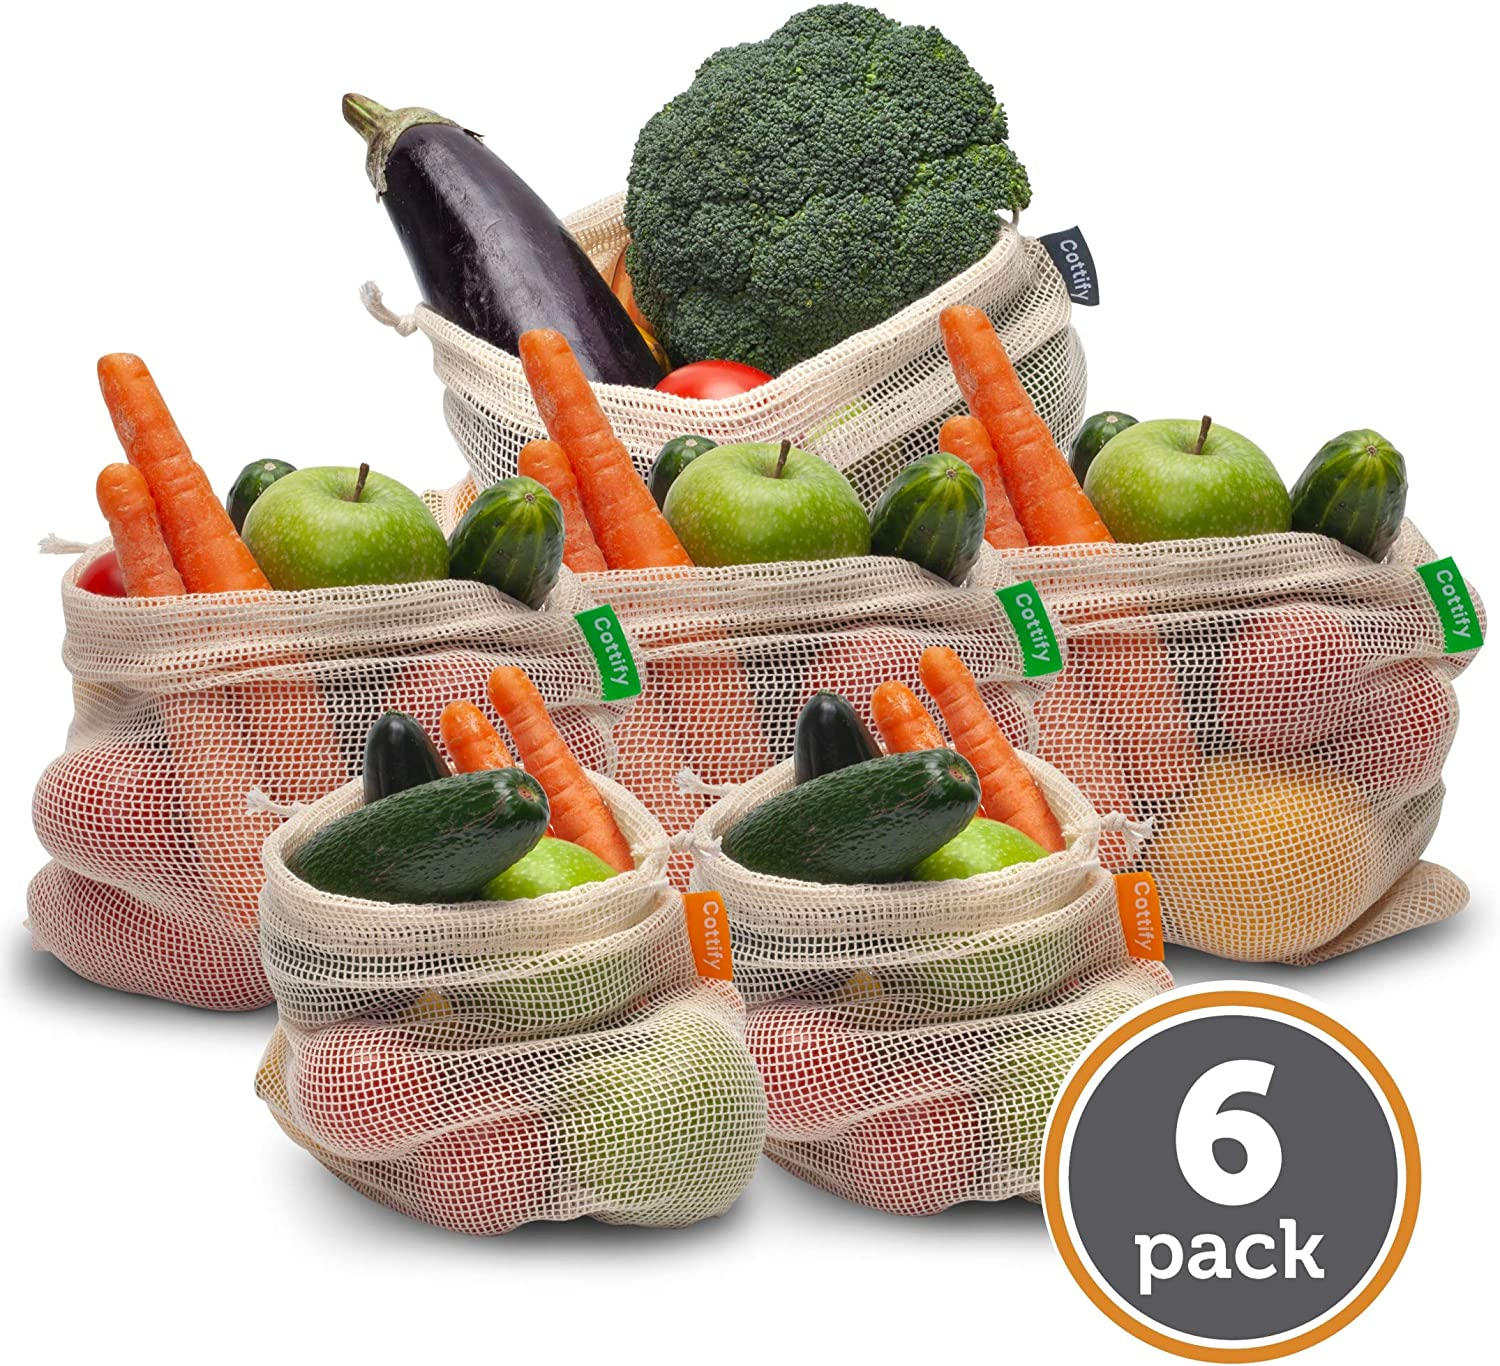 6 Reusable Organic Cotton Produce Bags - Bulk Pack of 6 Mesh | Eco Friendly | Double-Stitched & Tare Weigh & Drawstring | Fruits & Vegetable Bag | Machine Washable | LIGHTWEIGHT | 3 sizes (2S, 3M, 1L)